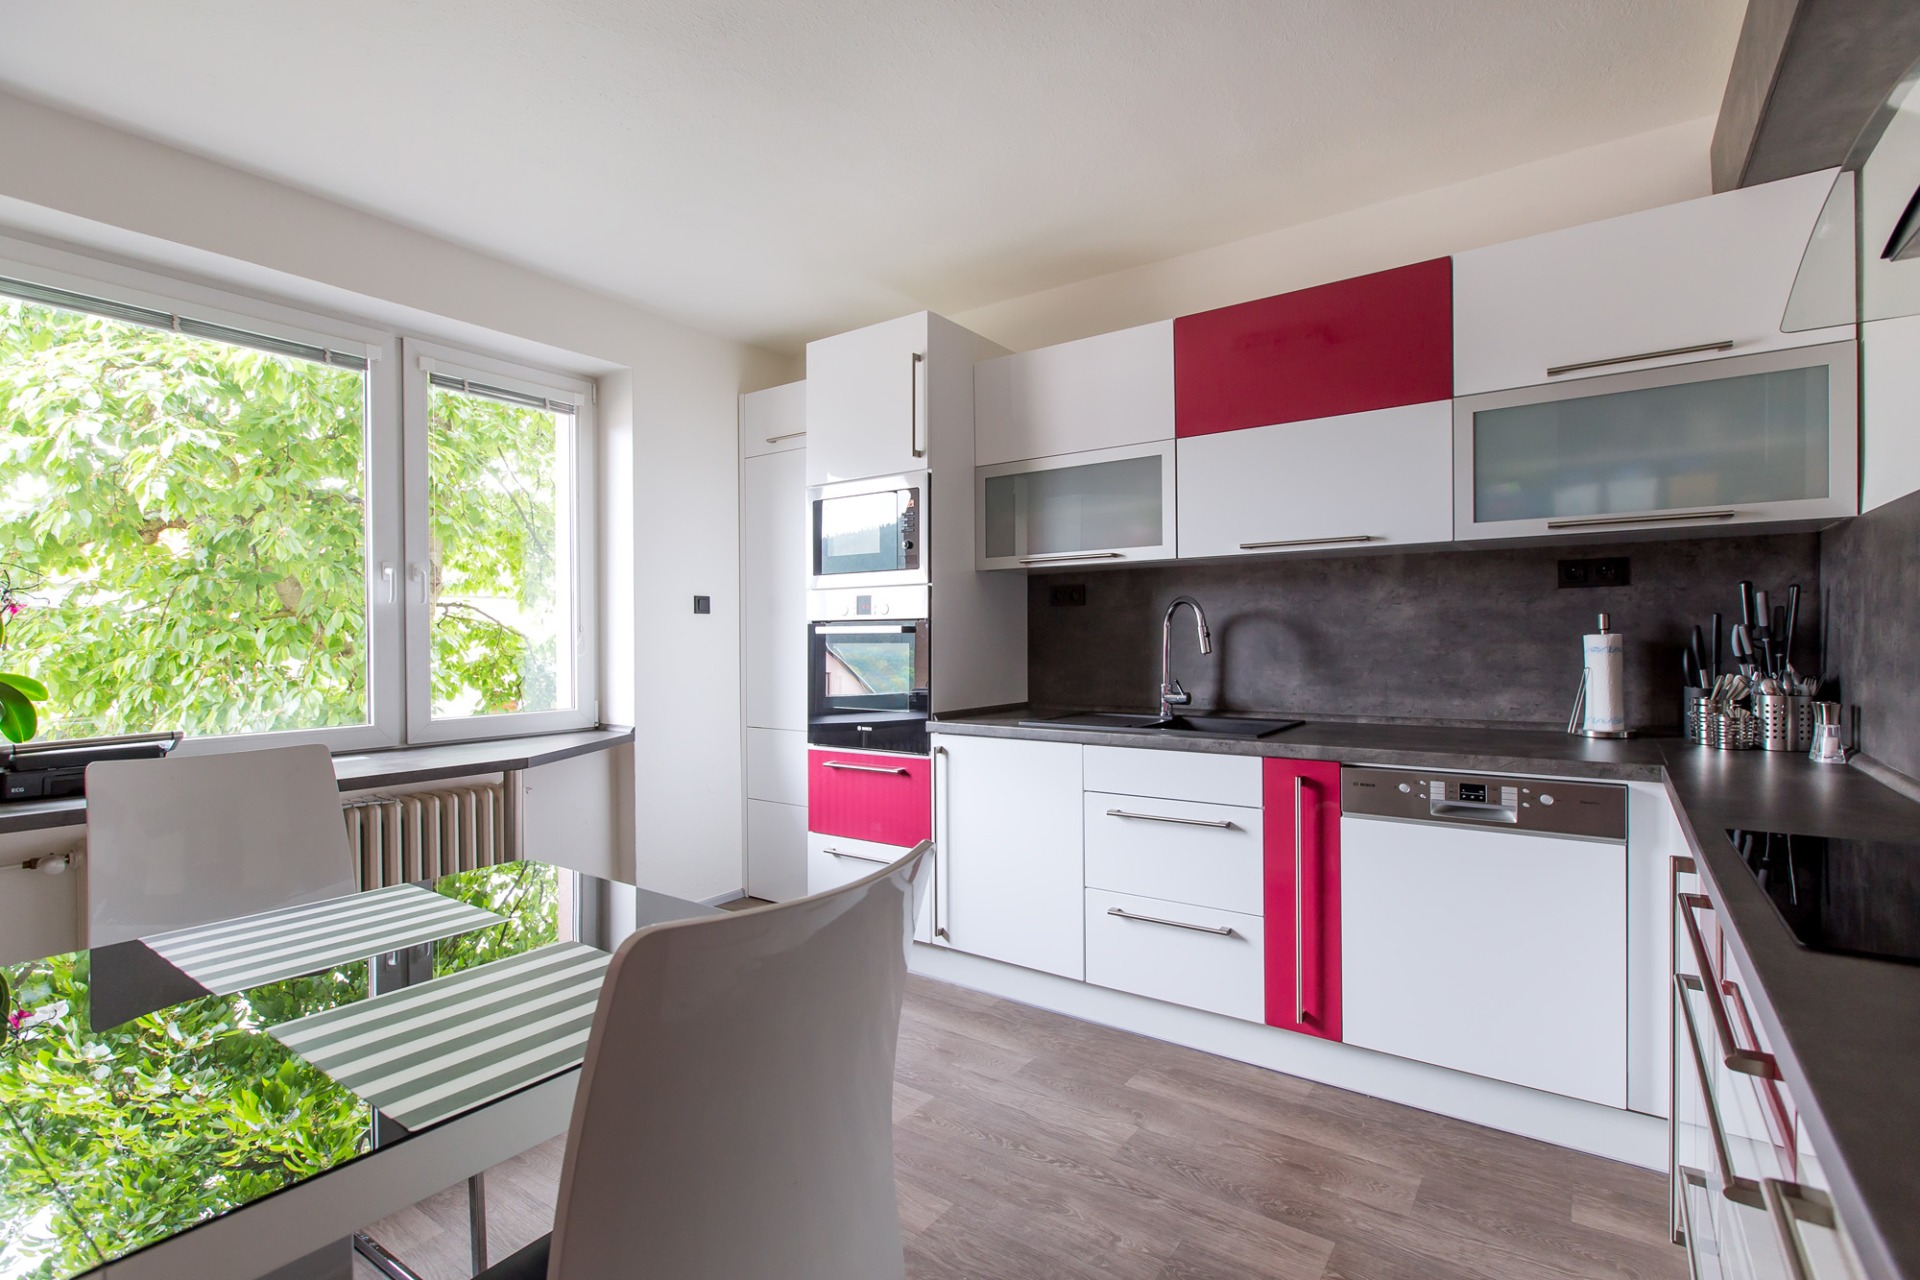 Kitchen with raspberry accent